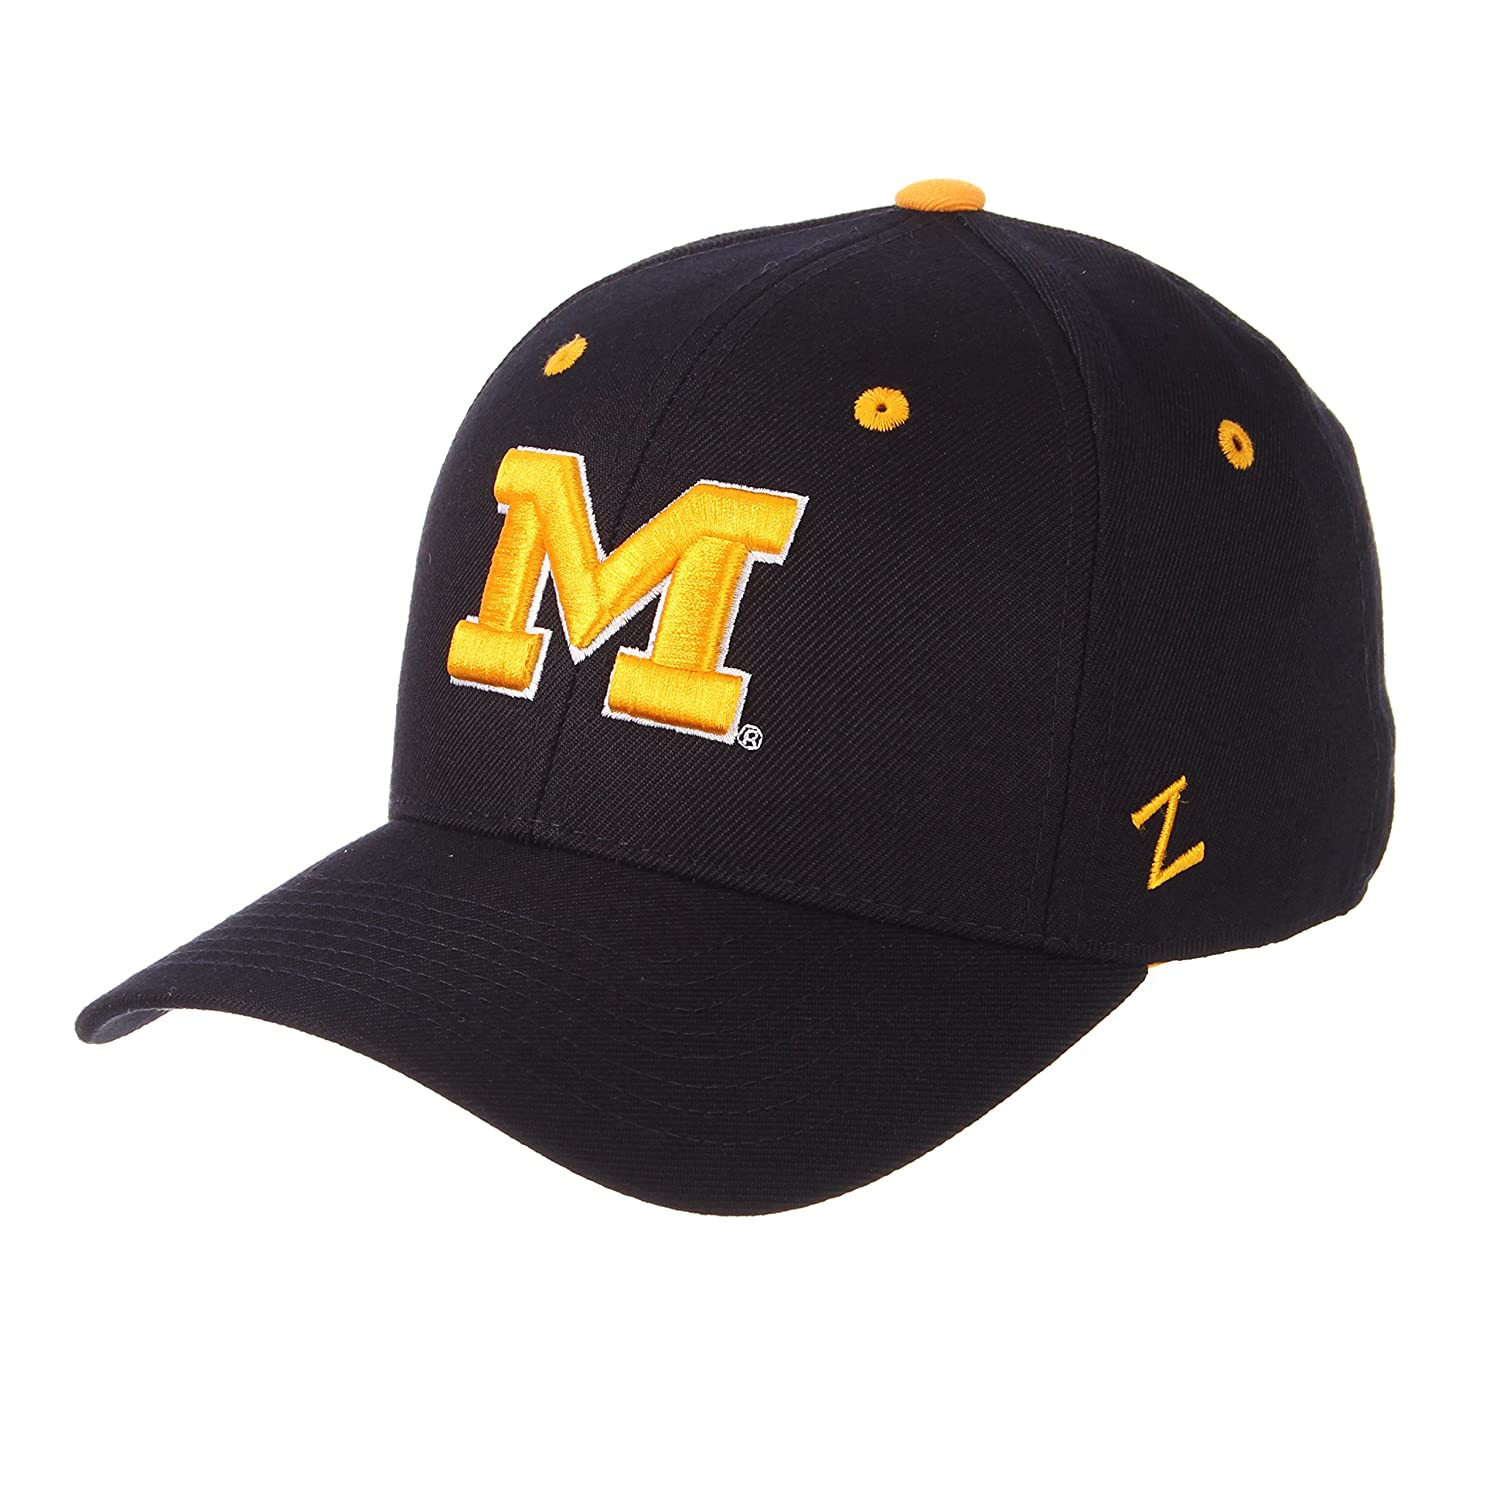 best service 022a9 b03a0 Amazon.com   NCAA Zephyr Michigan Wolverines Navy DH Fitted Hat (6 7 8)    Baseball Caps   Clothing